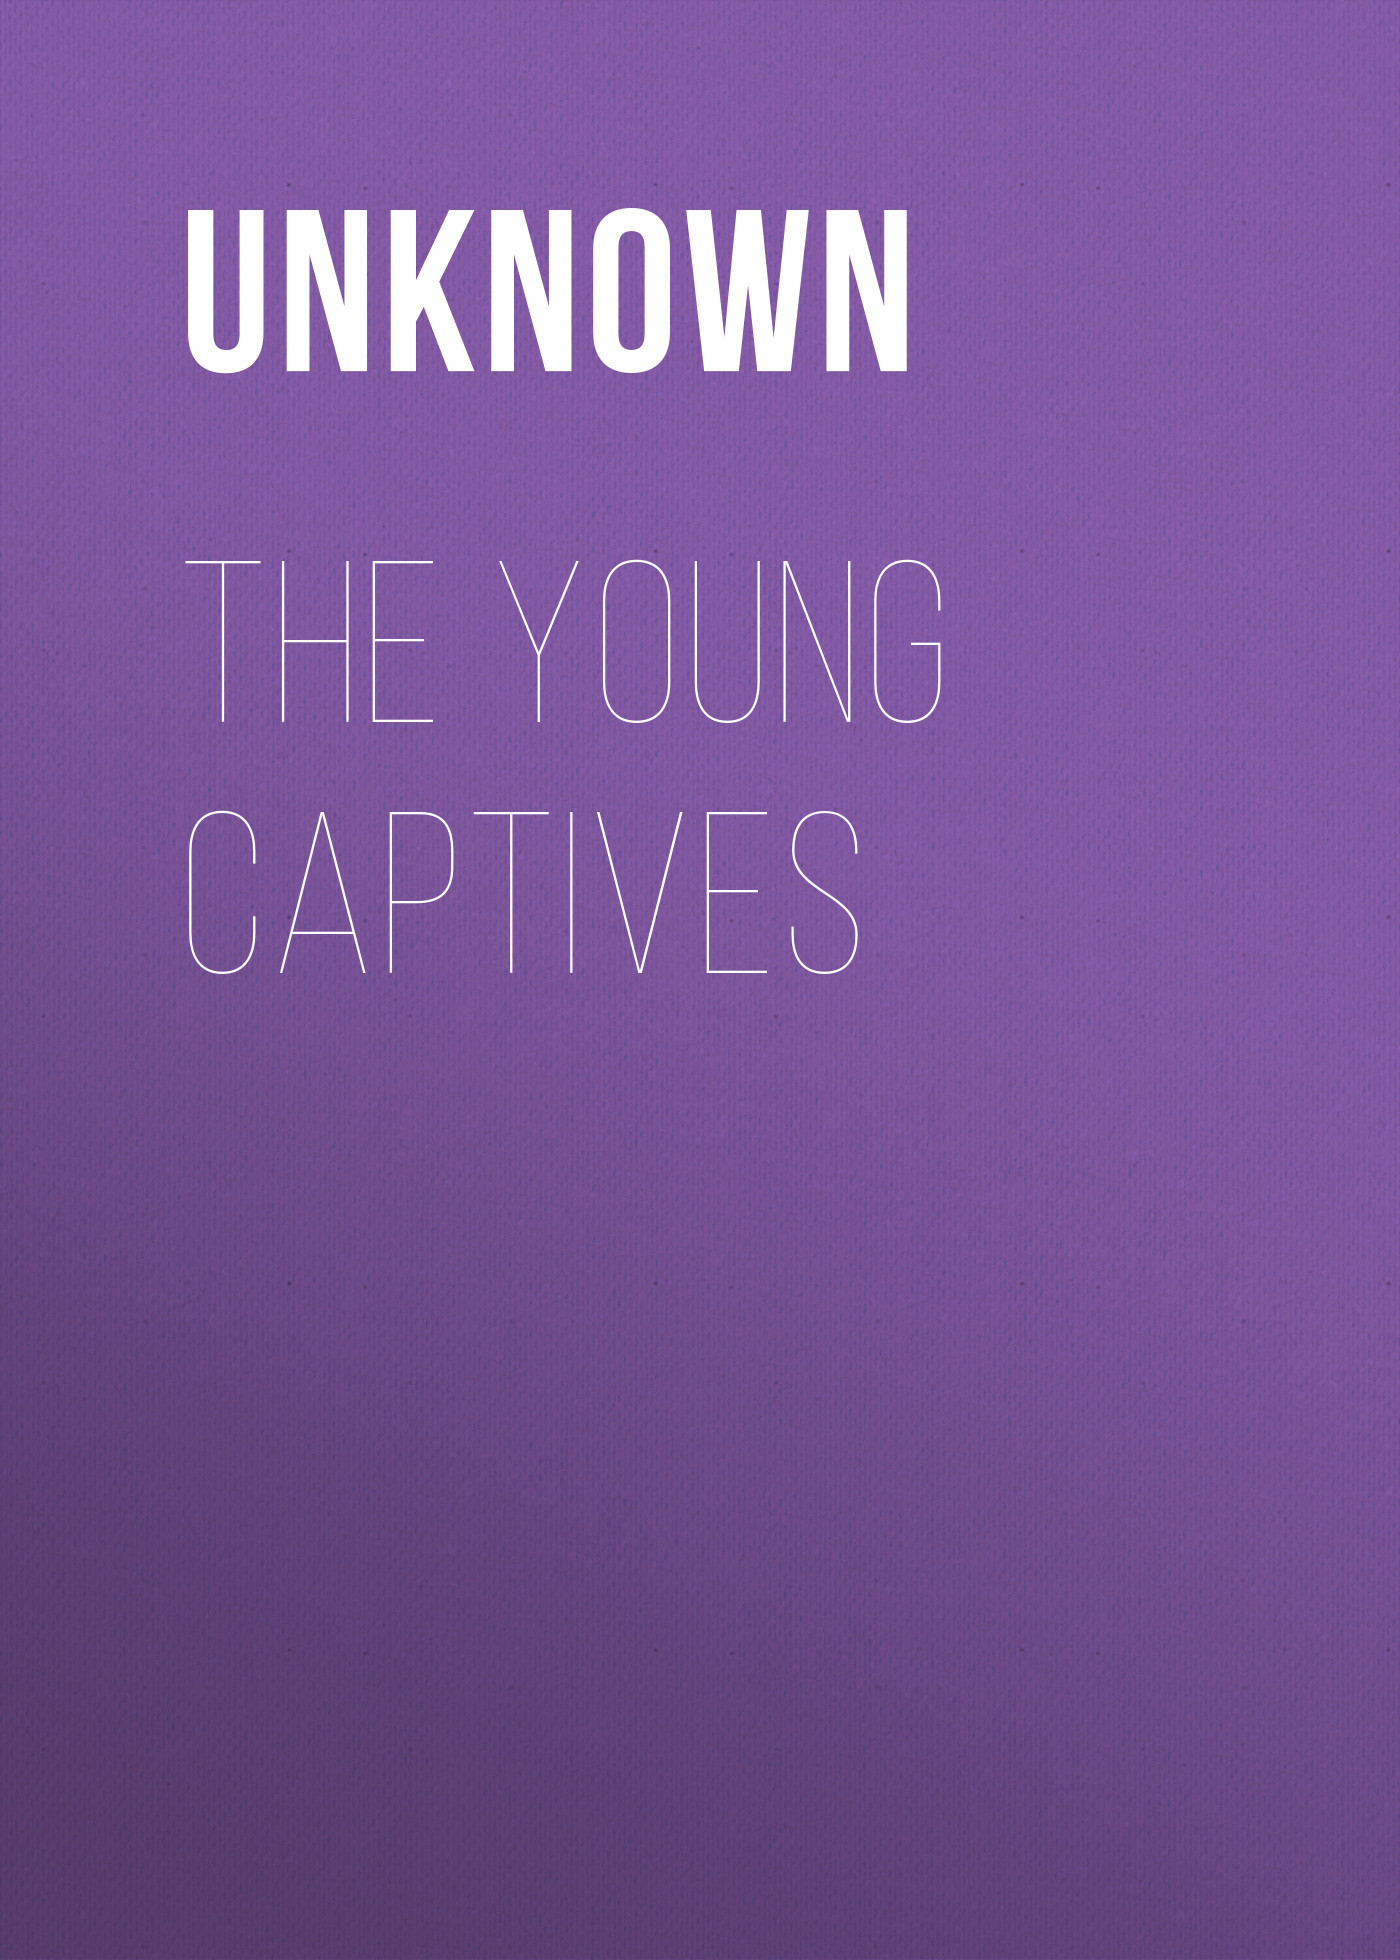 Unknown The Young Captives